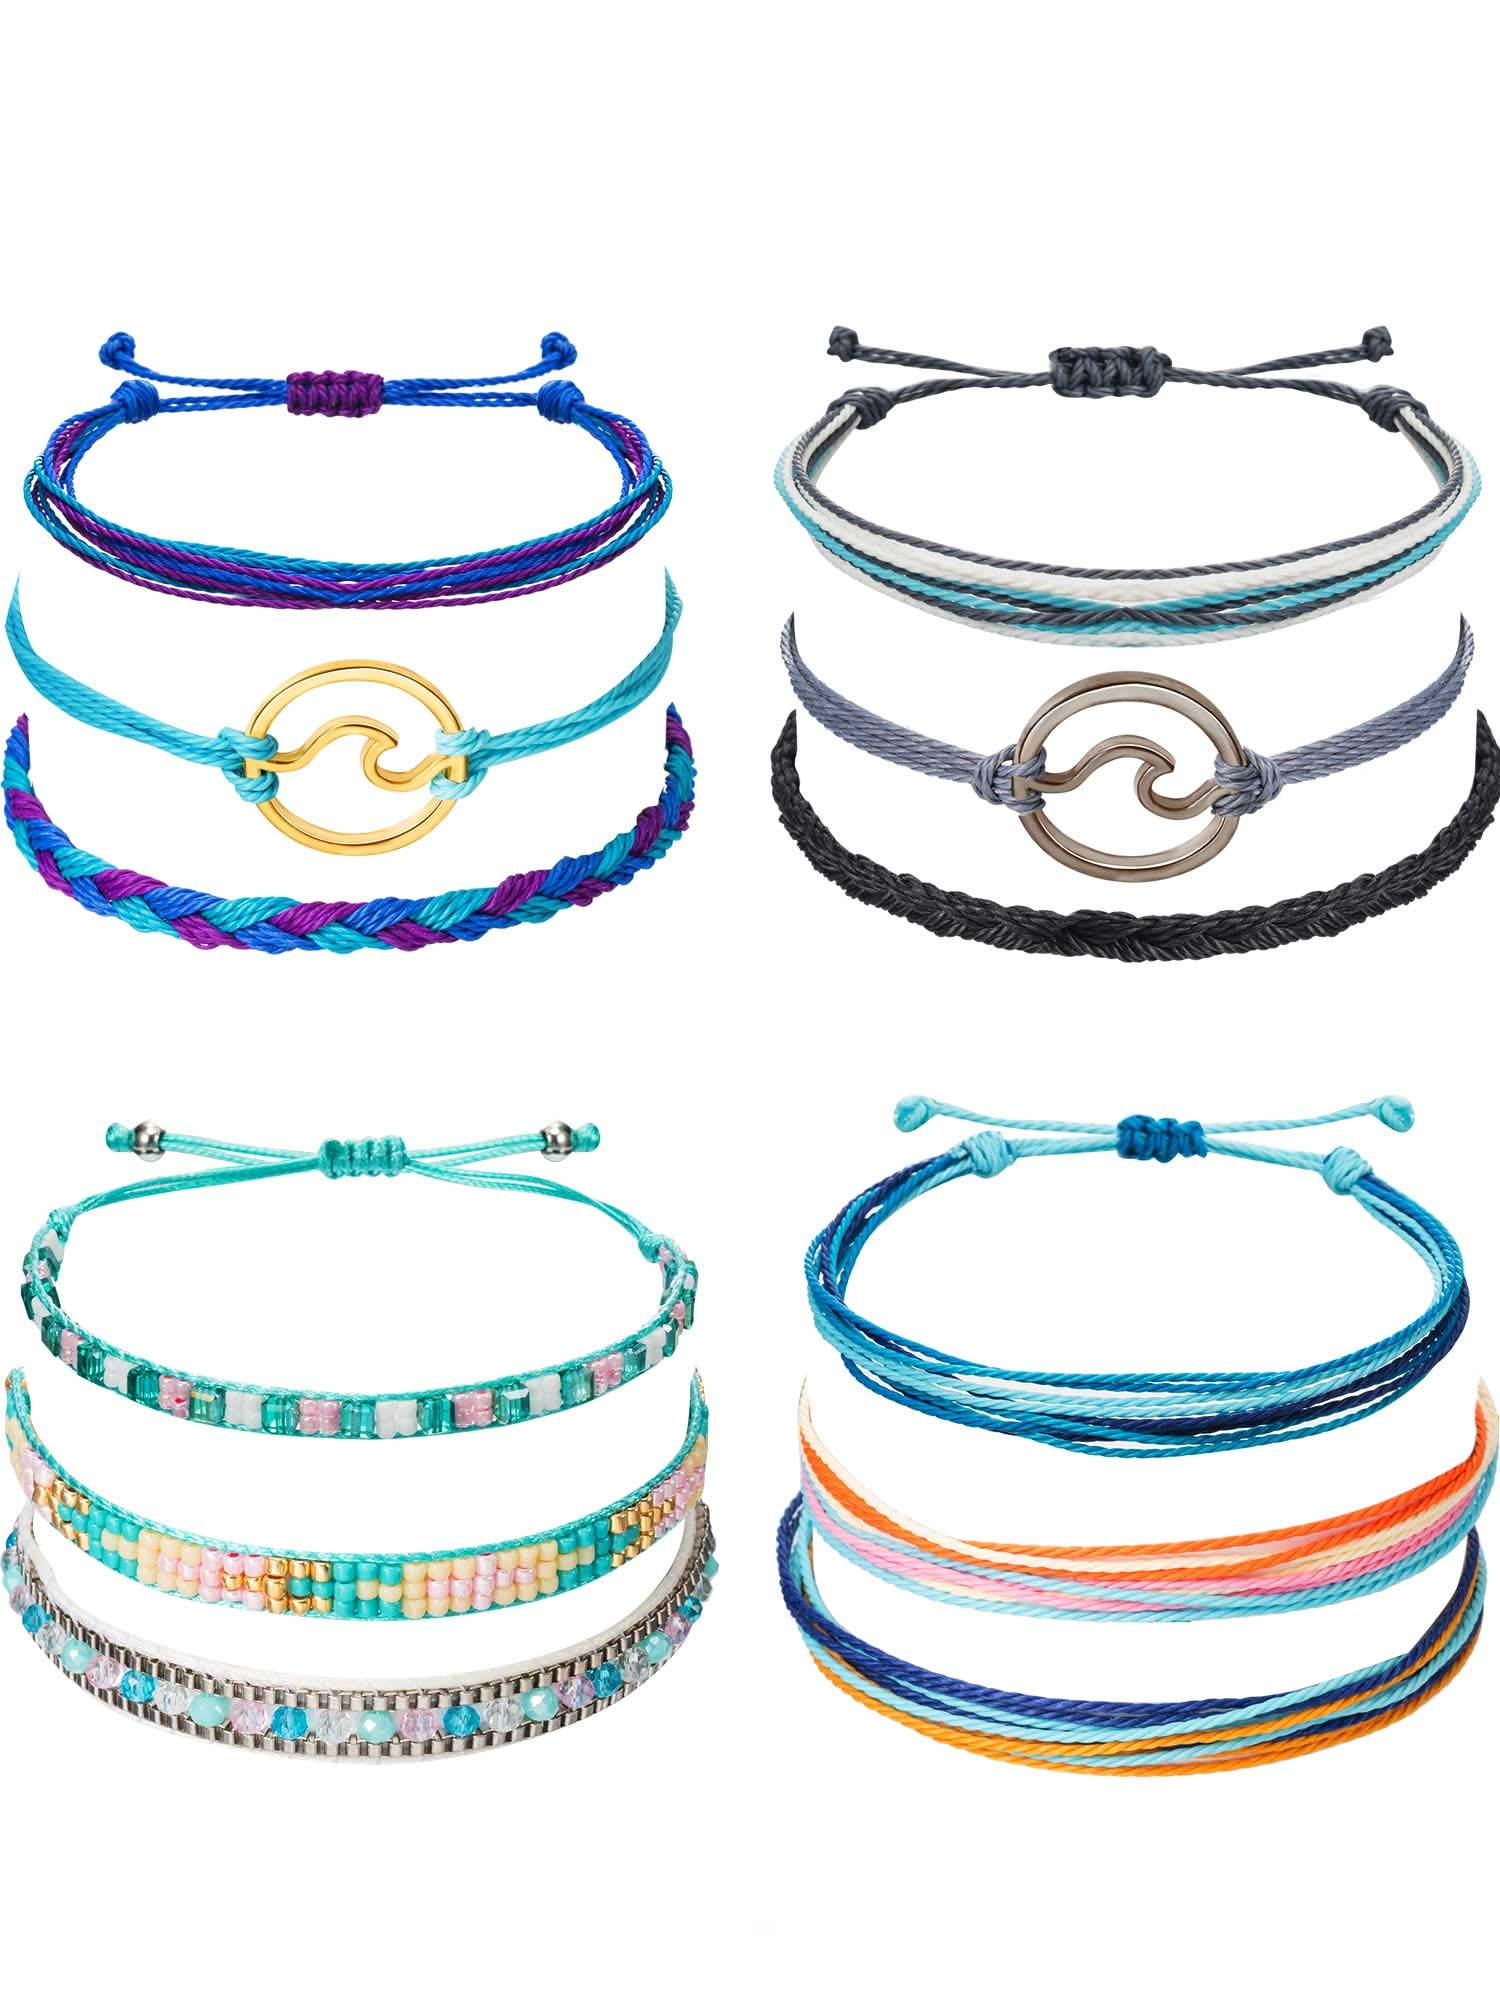 Chuangdi 12 Pieces Wave Strand Bracelet Set Handmade Adjustable Friendship Bracelet Handcrafted Jewelry Women (Style 2) by Chuangdi